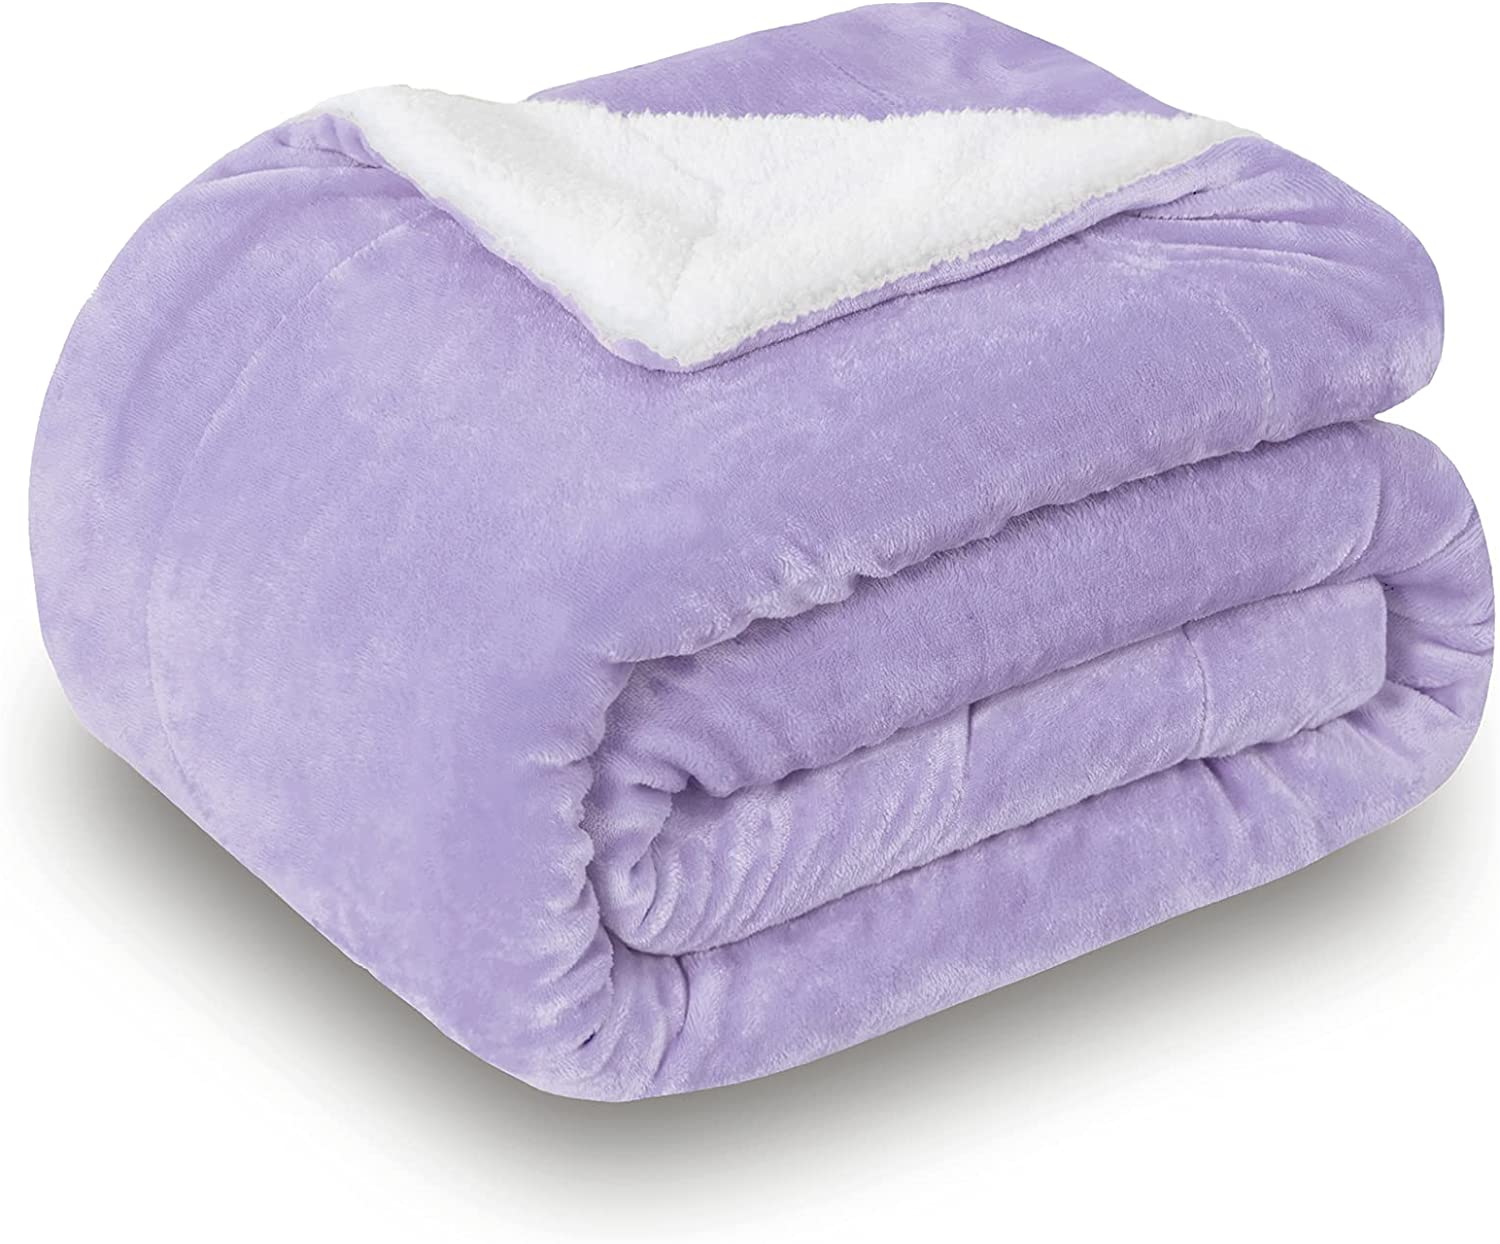 SOCHOW Sherpa Fleece Max 44% OFF Throw Blanket Luxu Soft Super Double-Sided Classic